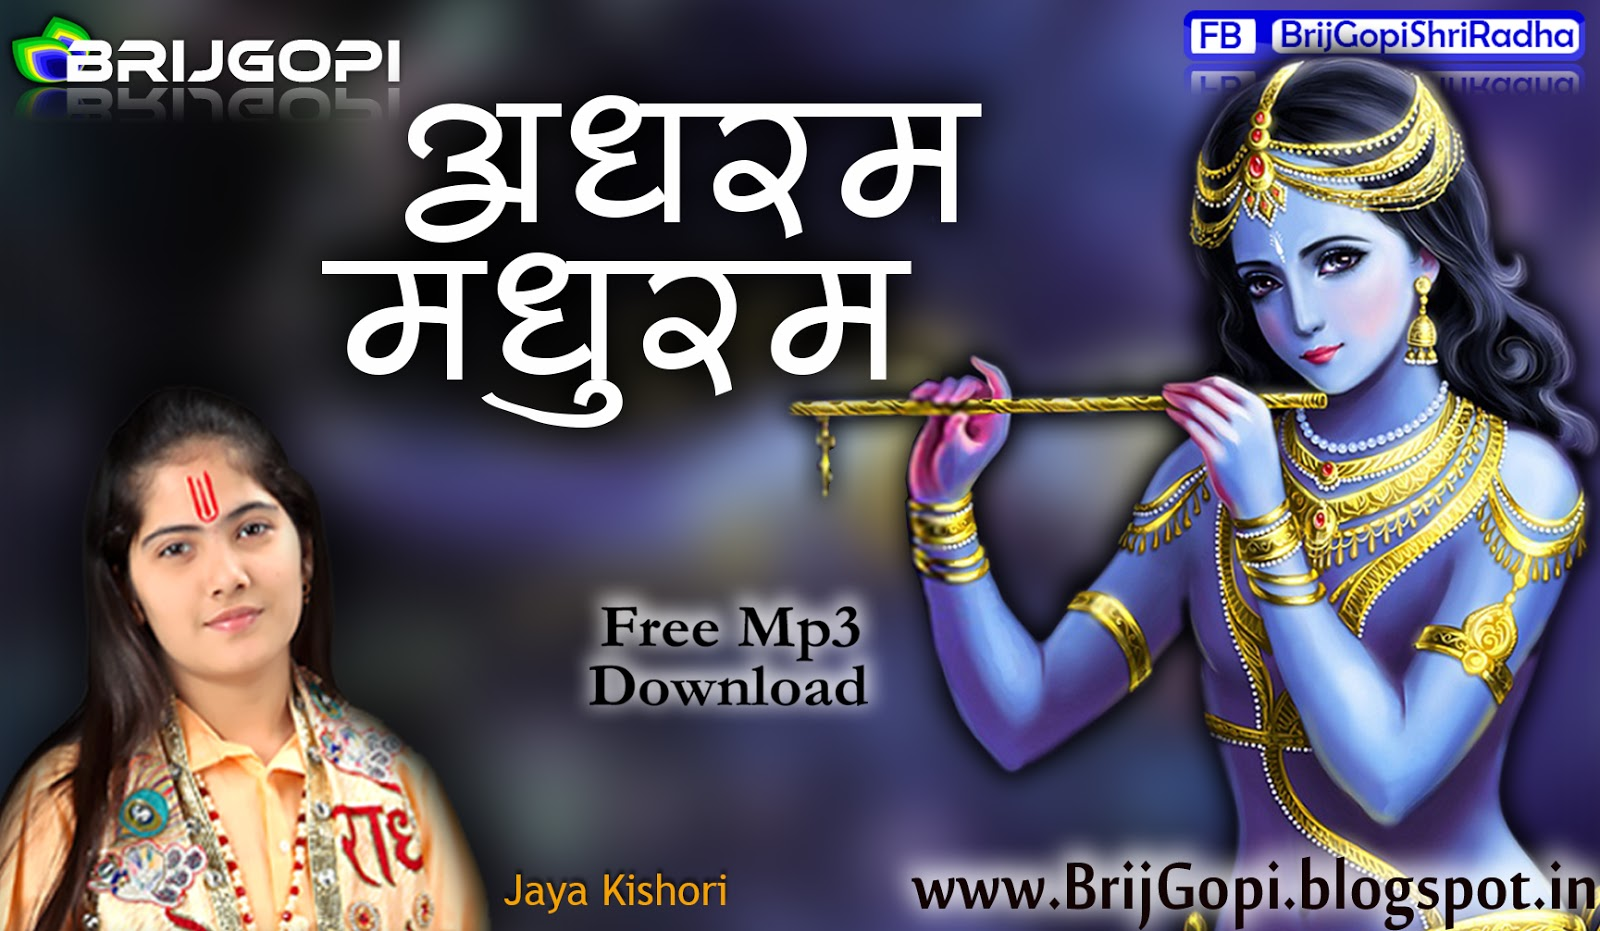 Adharam madhuram mp3 download vinaya djbaap. Com.